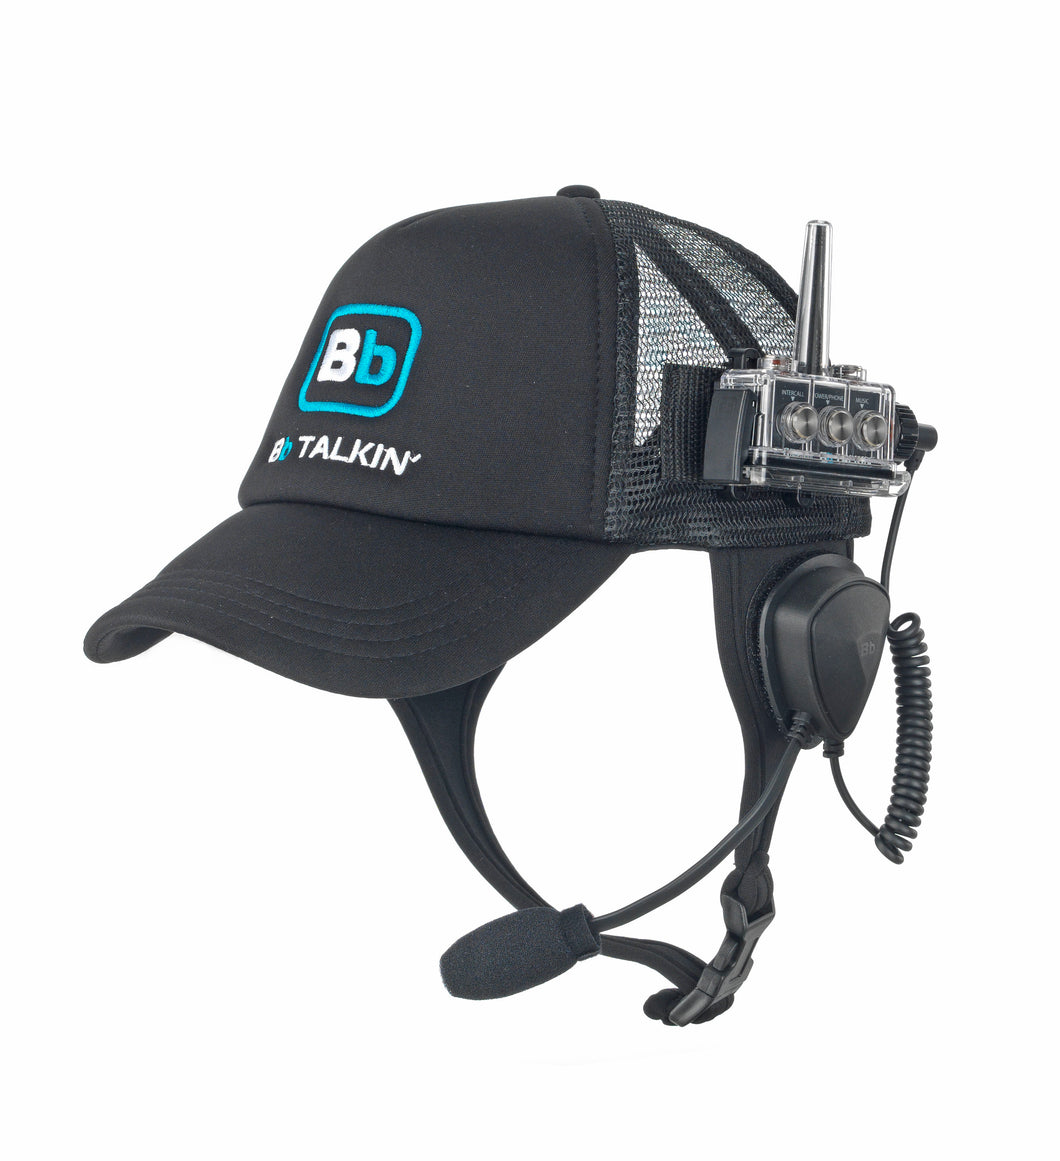 B01CR: Surf Cap Headset